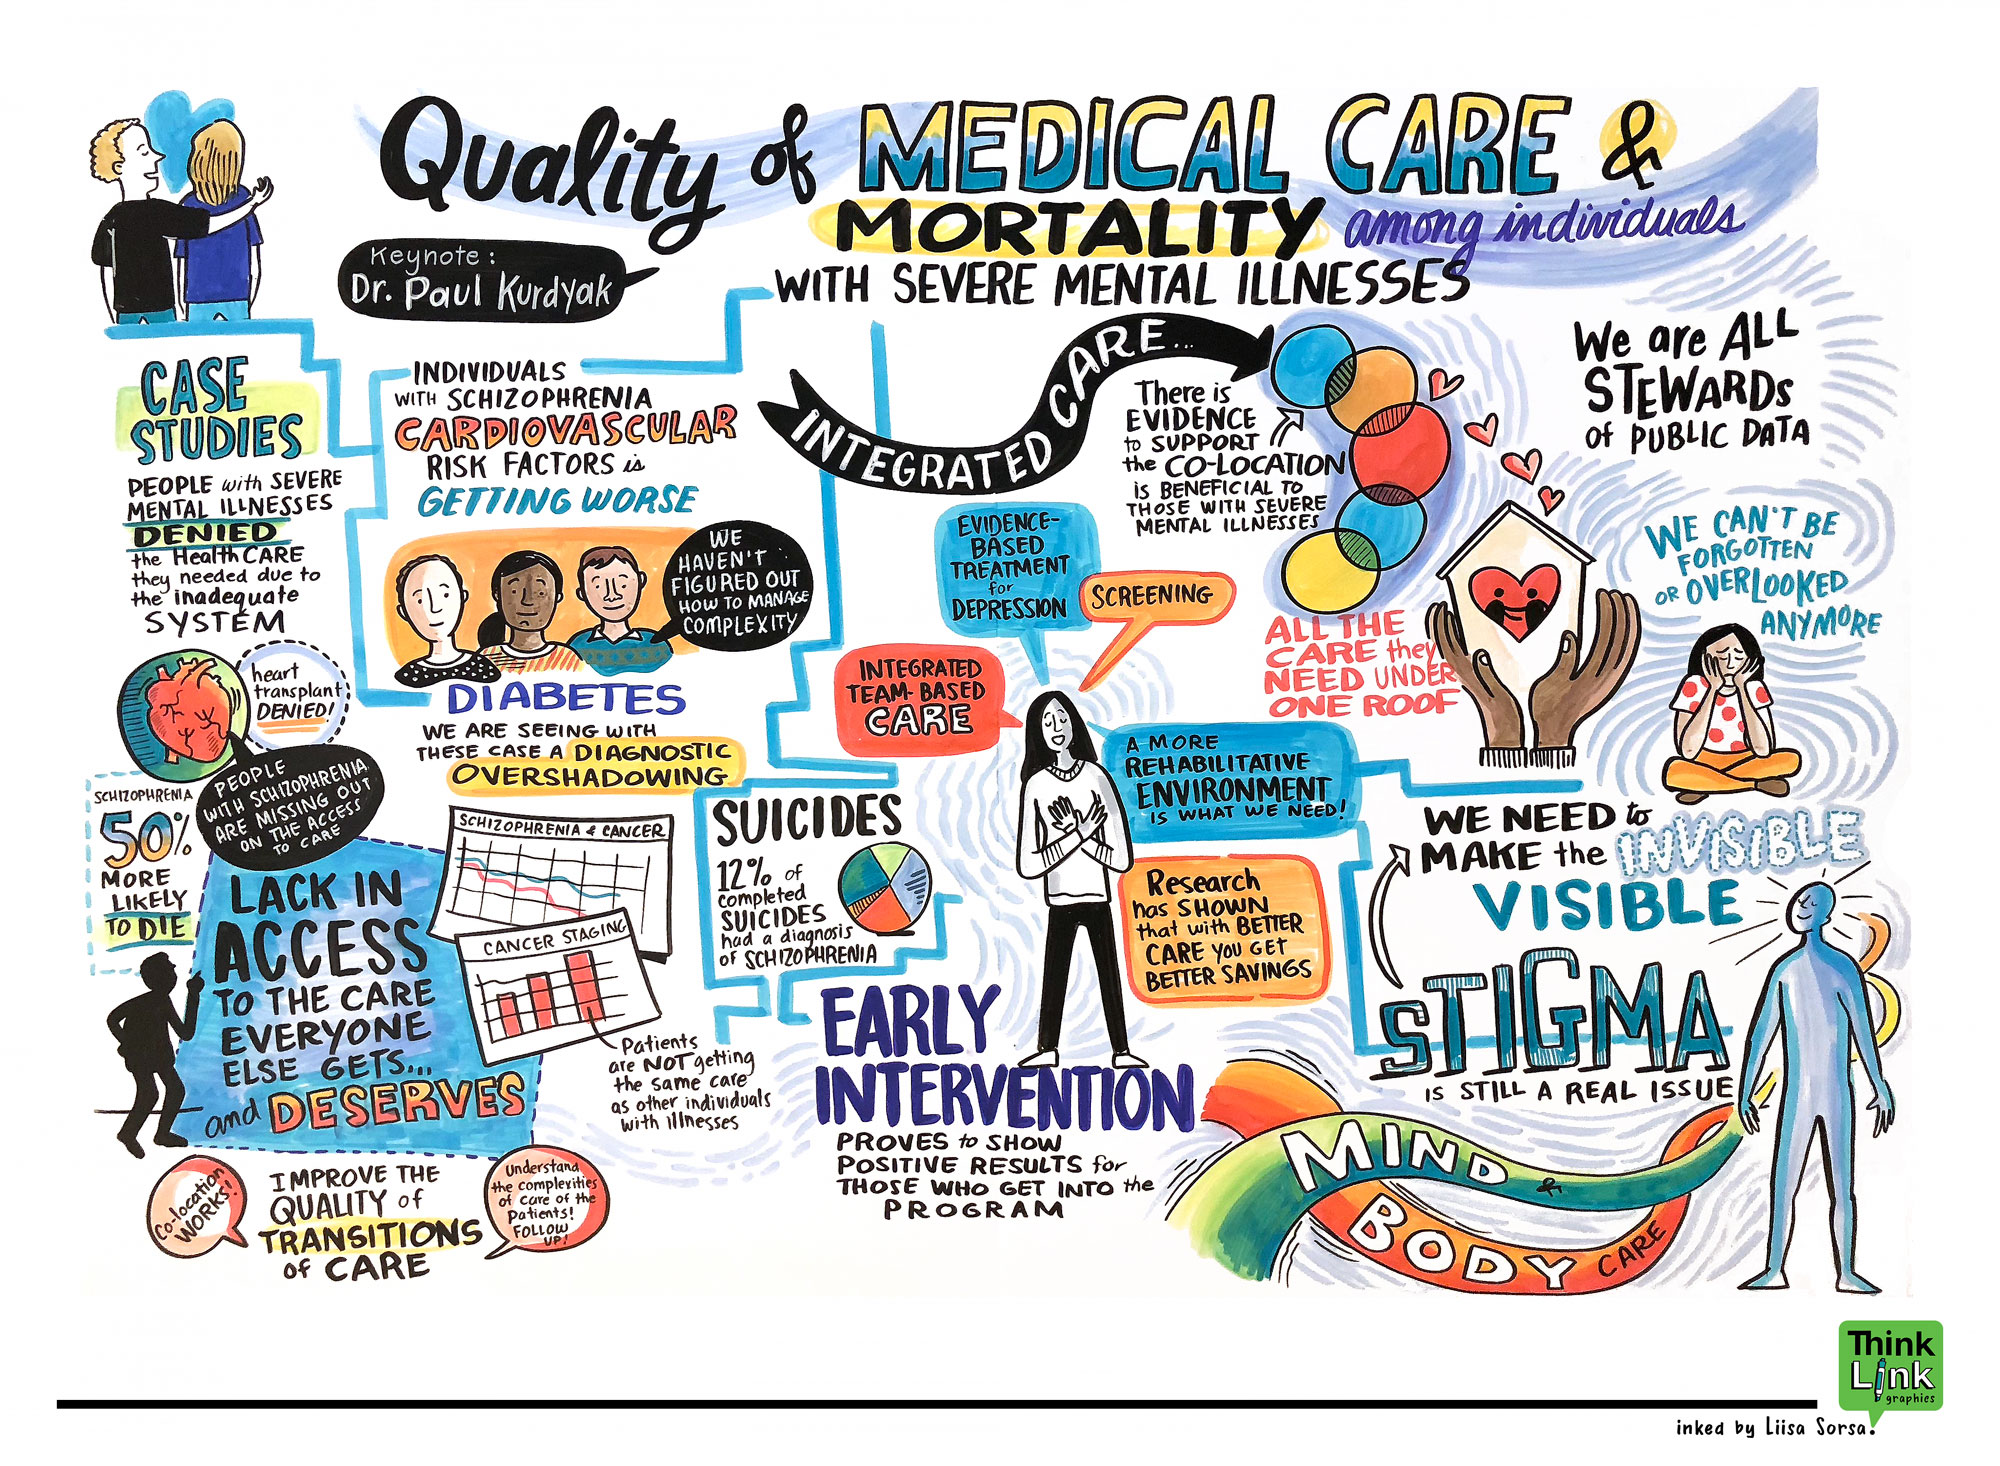 Quality of medical care and mortality